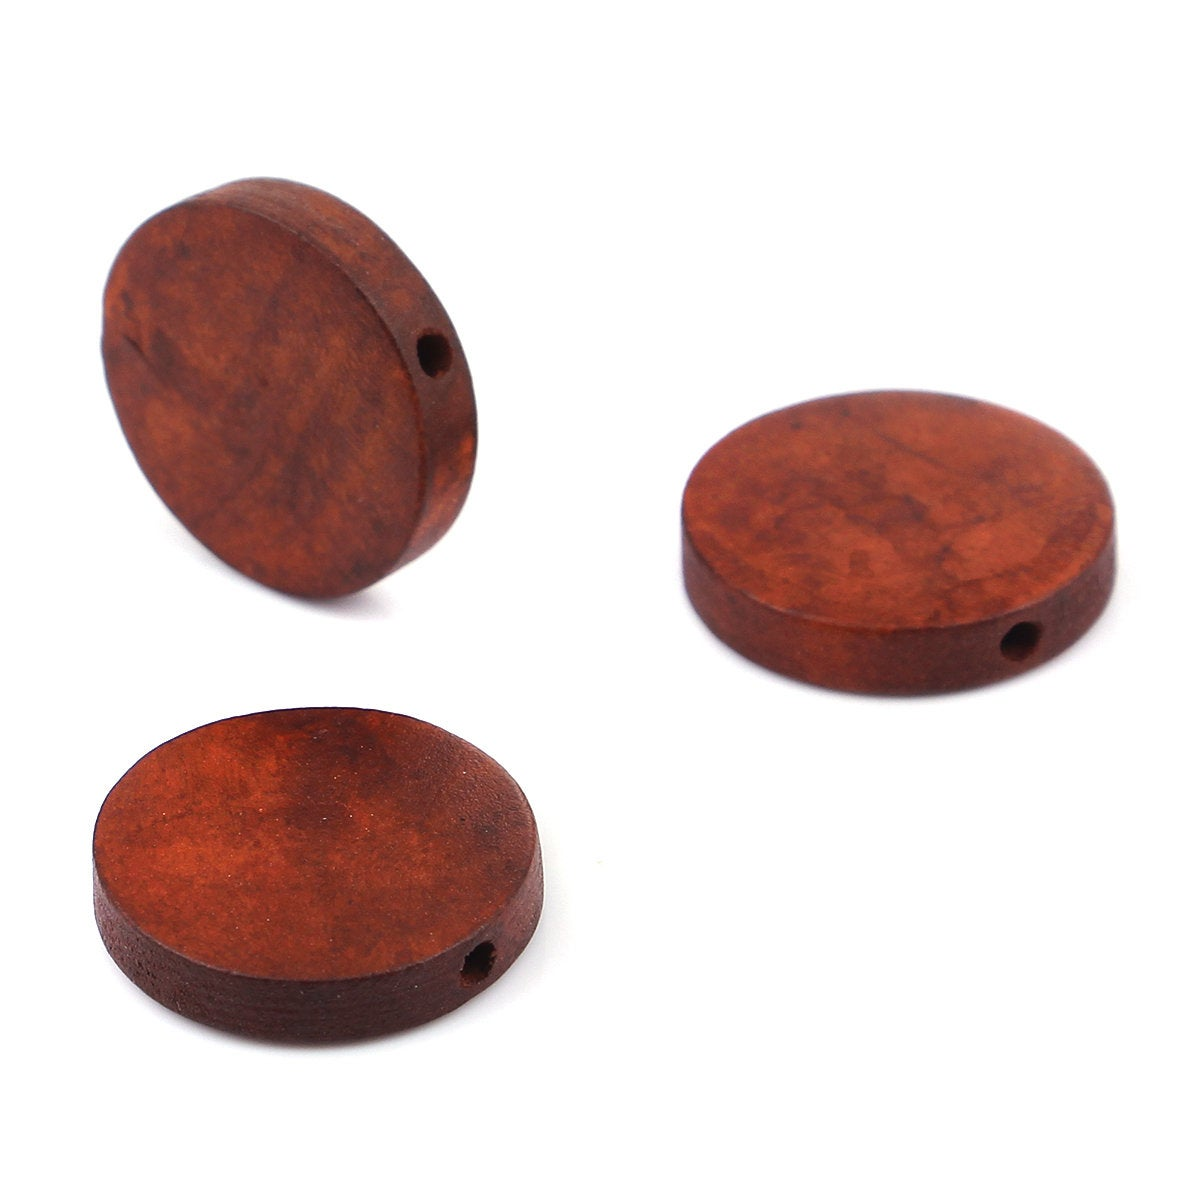 50 Wood Disc Beads, 20mm Beads, Natural Wood Beads, Flat Beads, Disc Beads https://t.co/BJPj5NpCeK #craft supplies #Etsy #Beads #letterbeads #VickysJewelrySupply #stampingsupplies #Jewelrysupplies #handmadejewelry #cabochons #charms #DiscBeads https://t.co/YmzfhkFnTZ